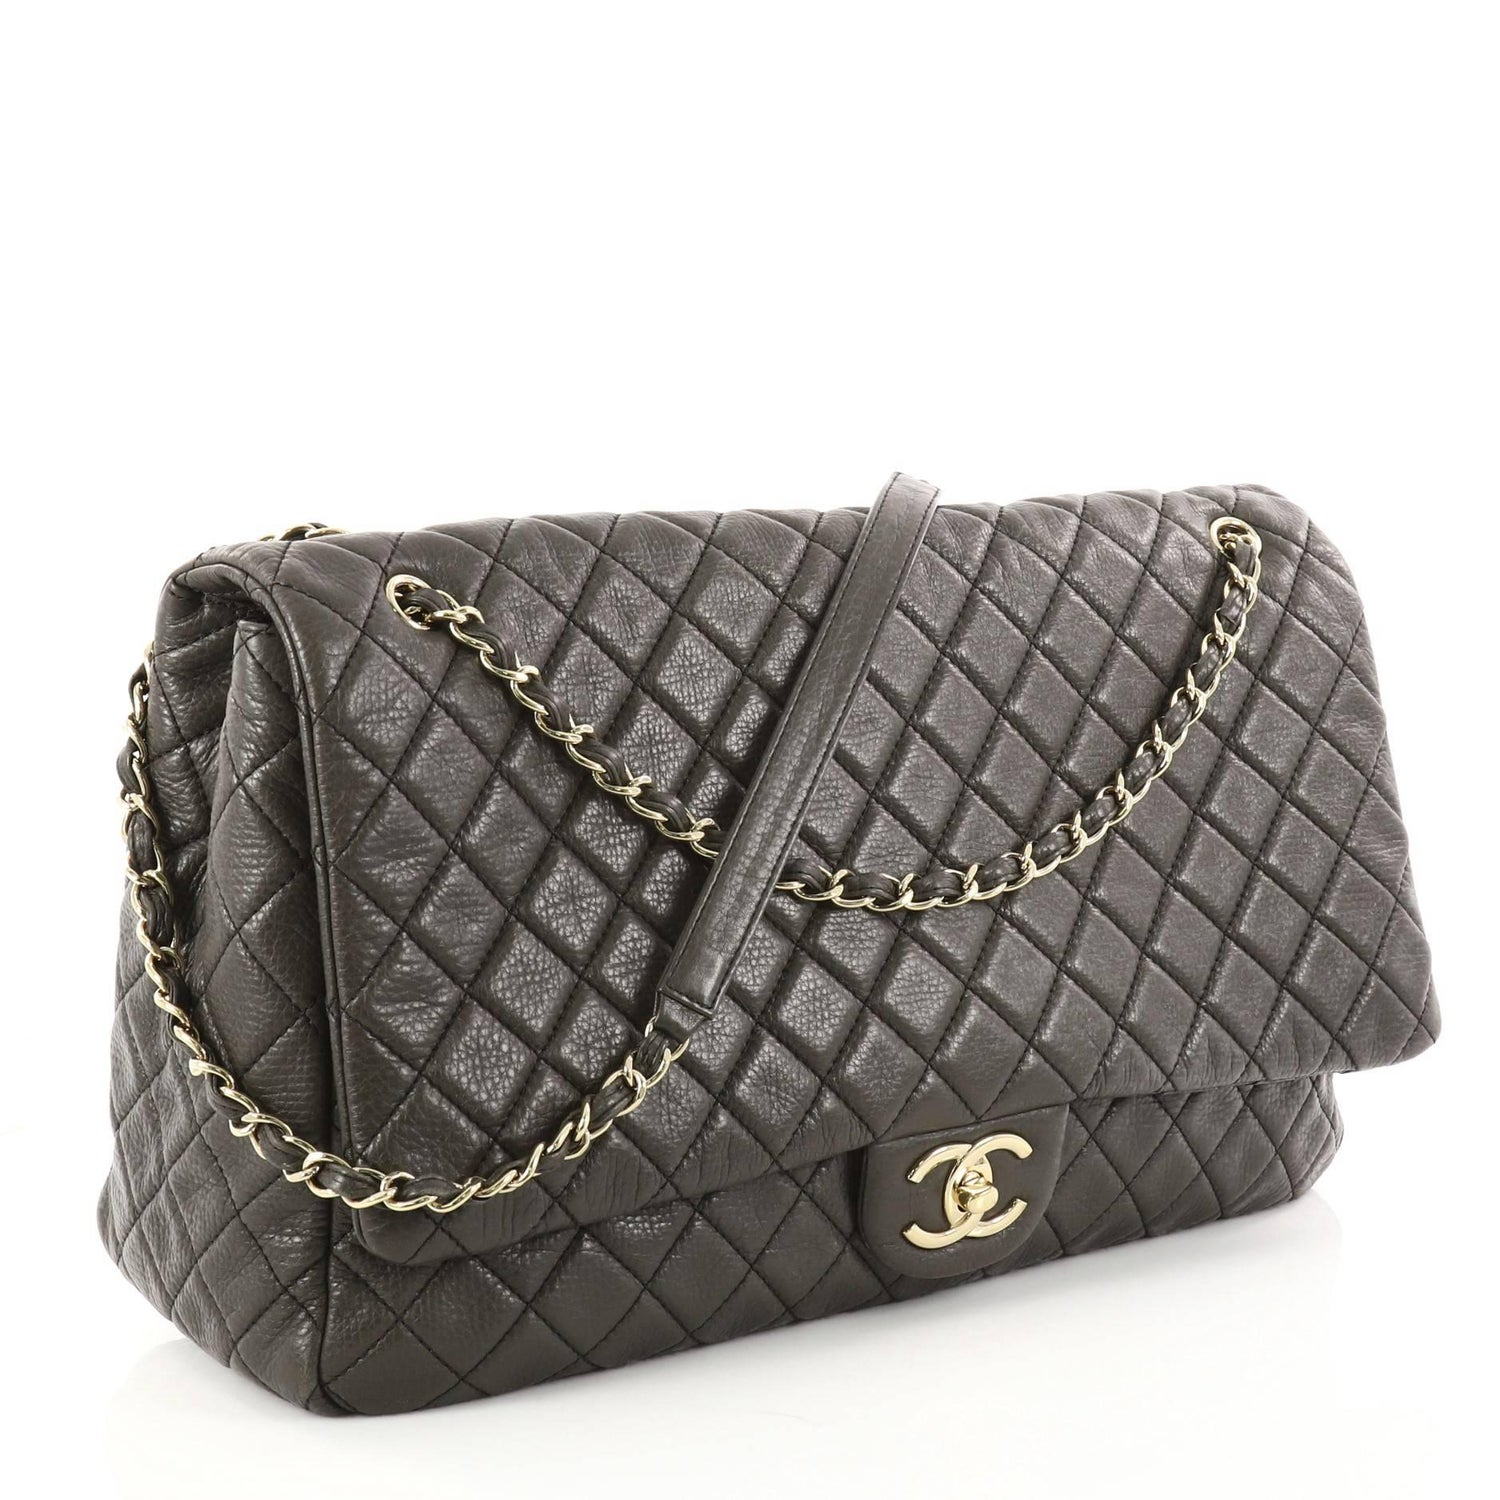 f5dbebfb3391 Chanel Airlines CC Quilted Calfskin XXL Flap Bag at 1stdibs